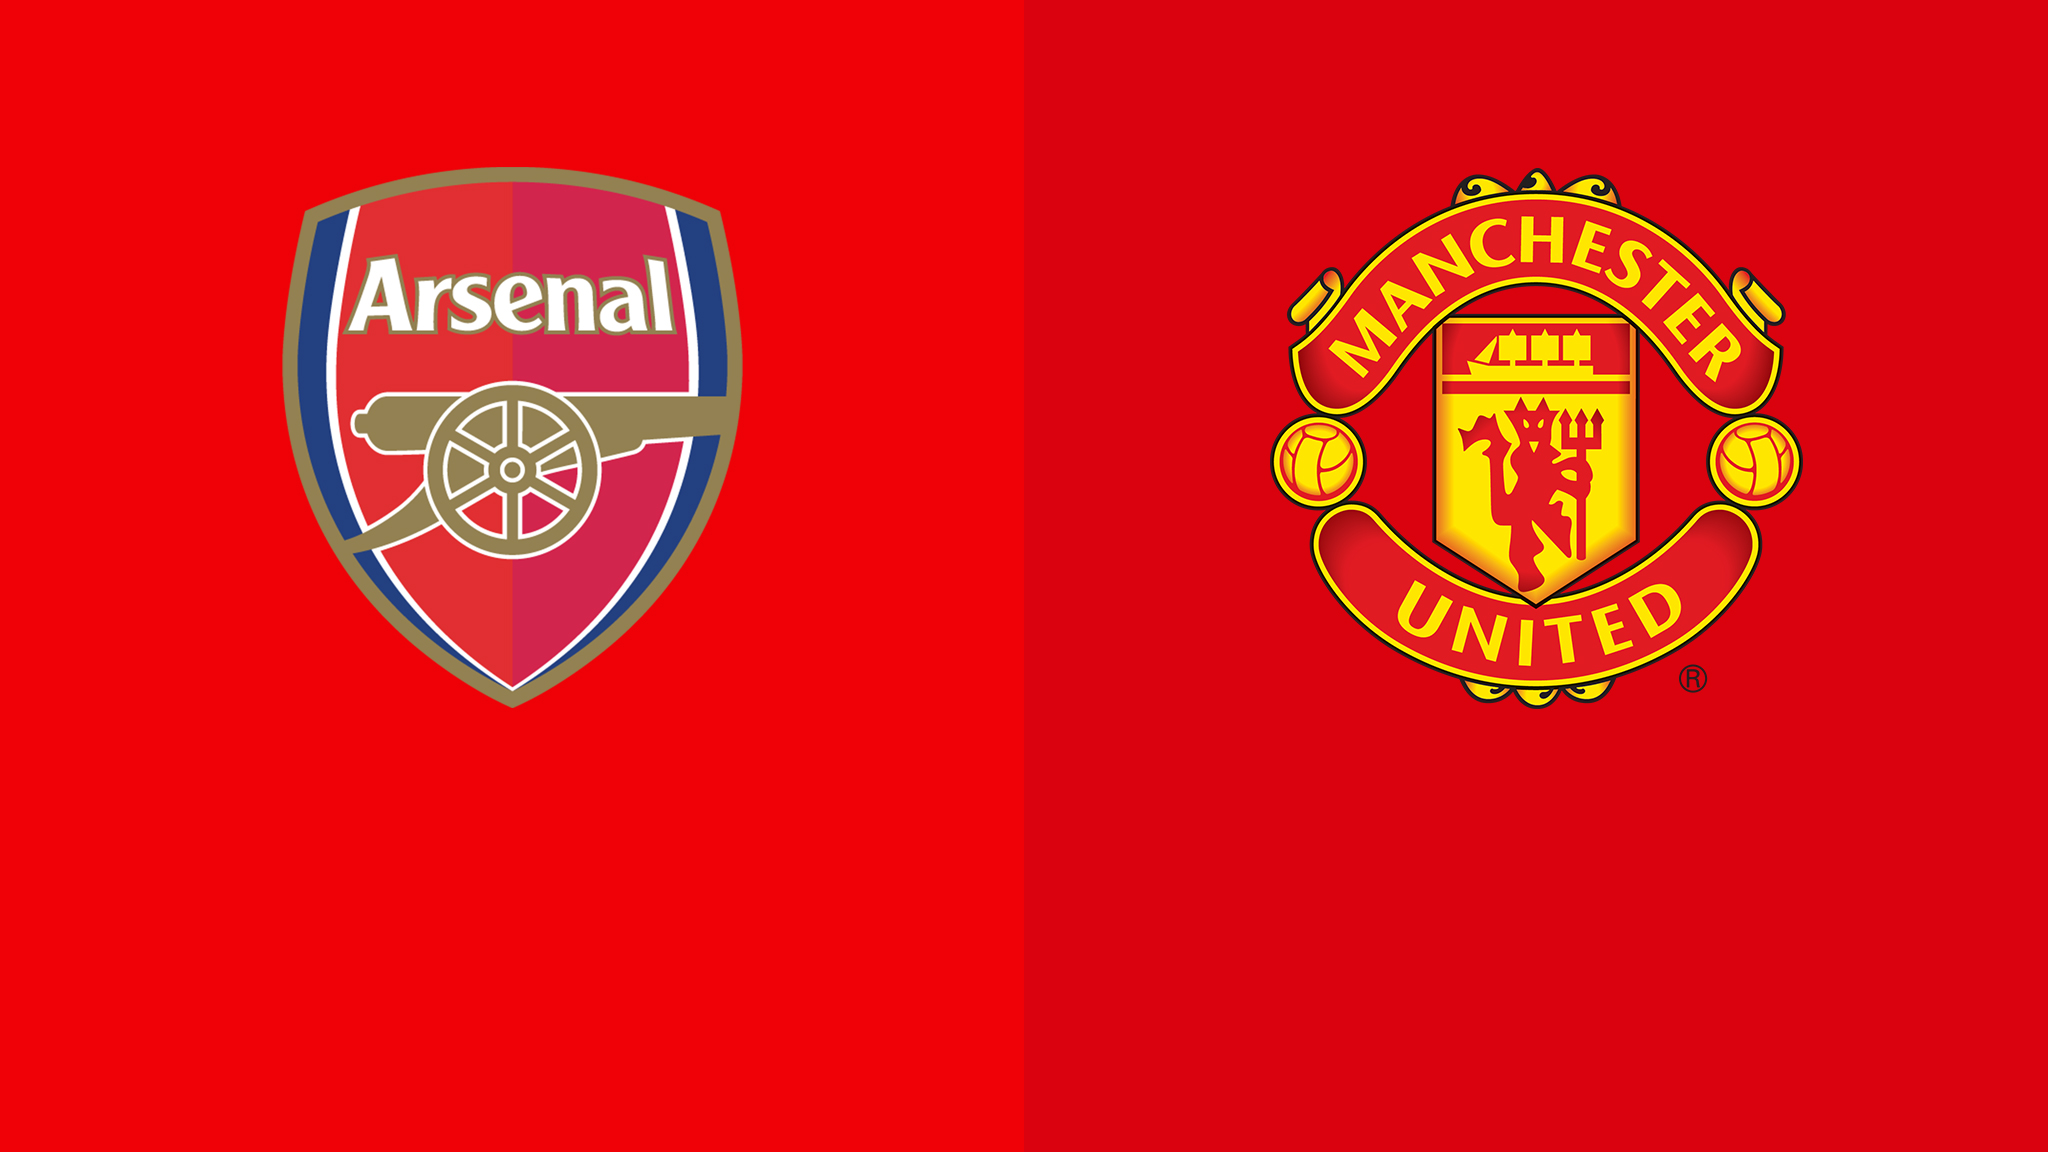 arsenal manchester united